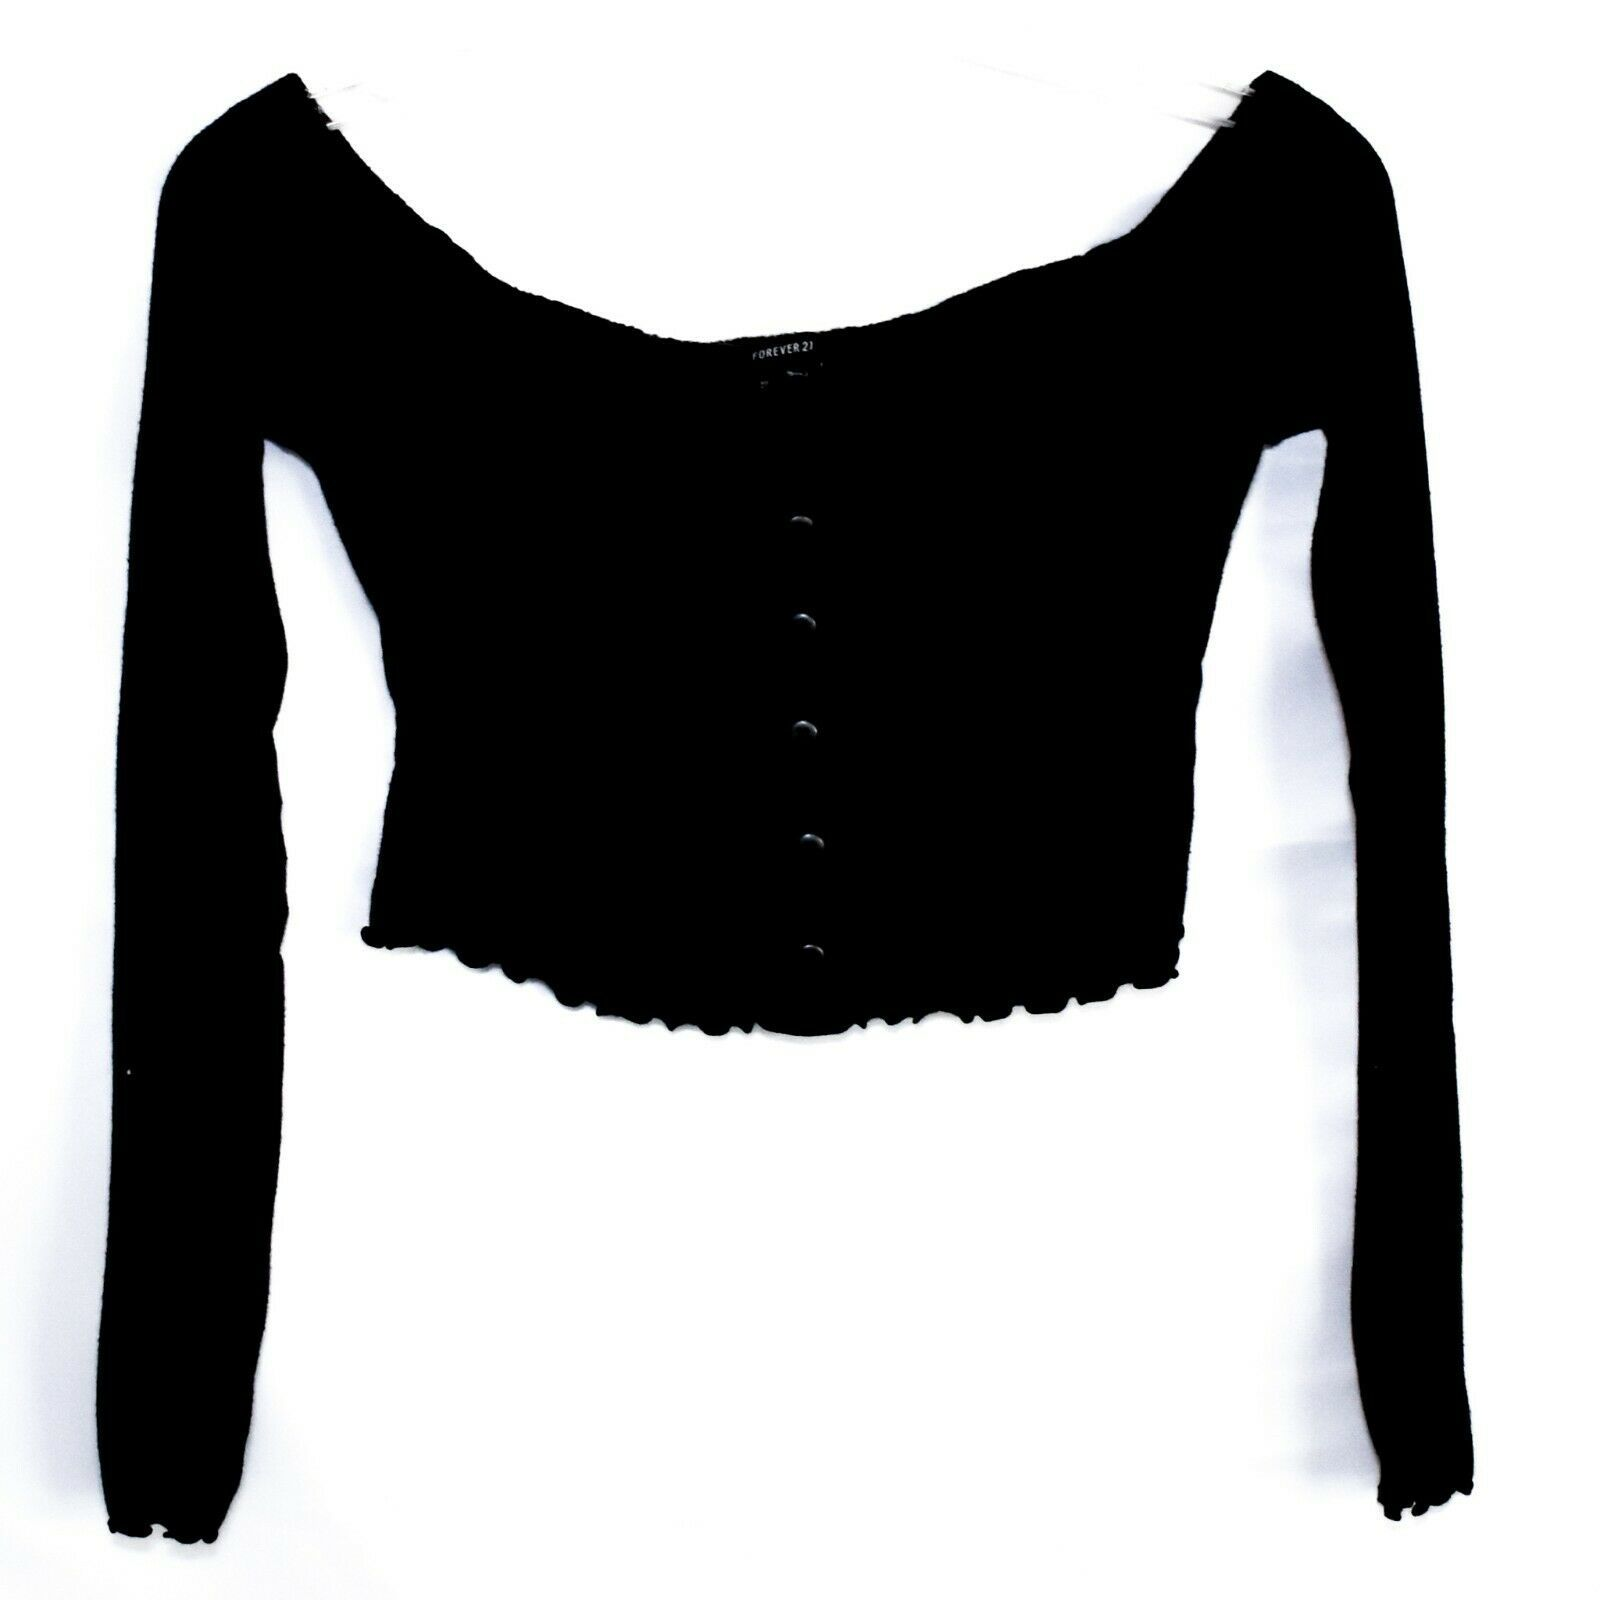 Forever 21 00194713 Women's Black Knit Crop Top Sweater Size S